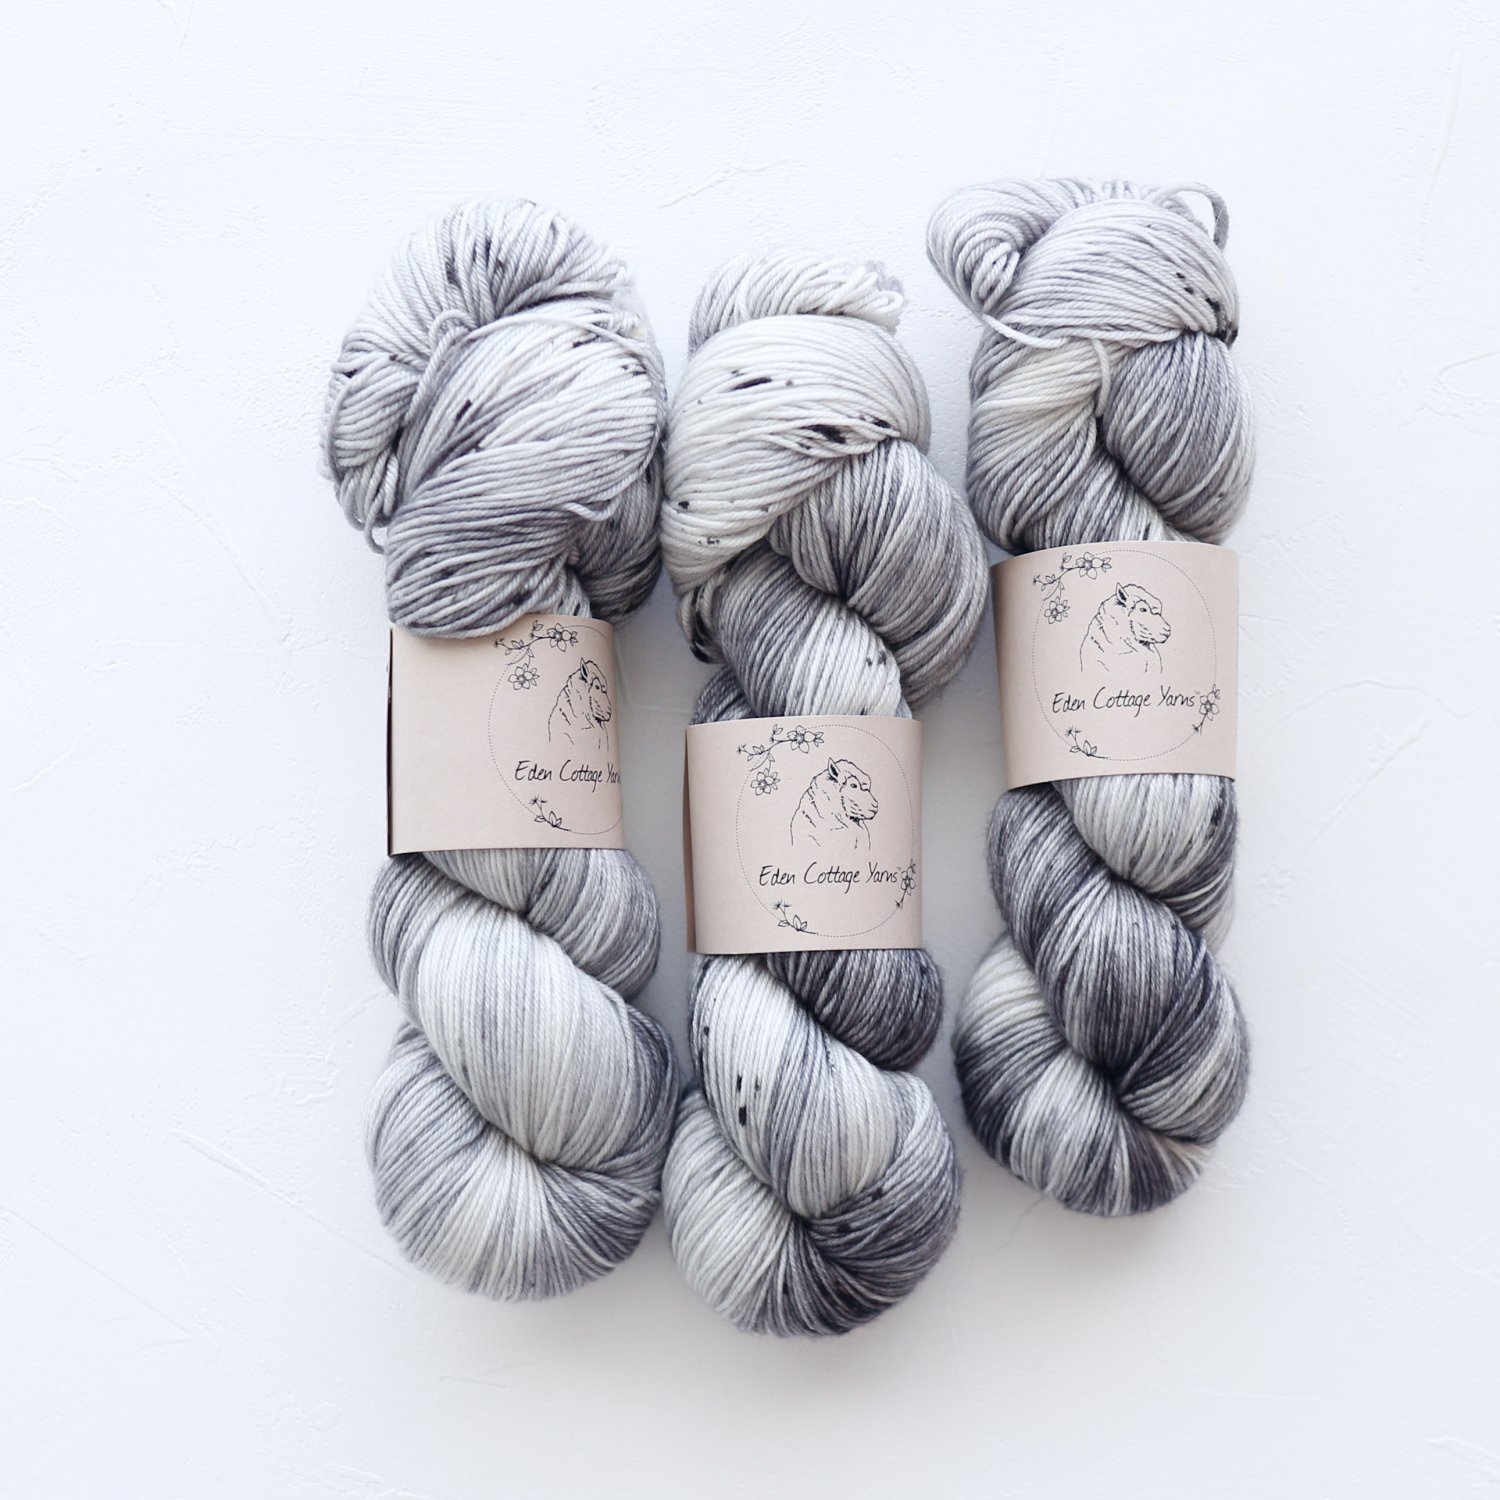 【Eden Cottage Yarns】<br>Pendle 4ply<br>Dry Stone Wall